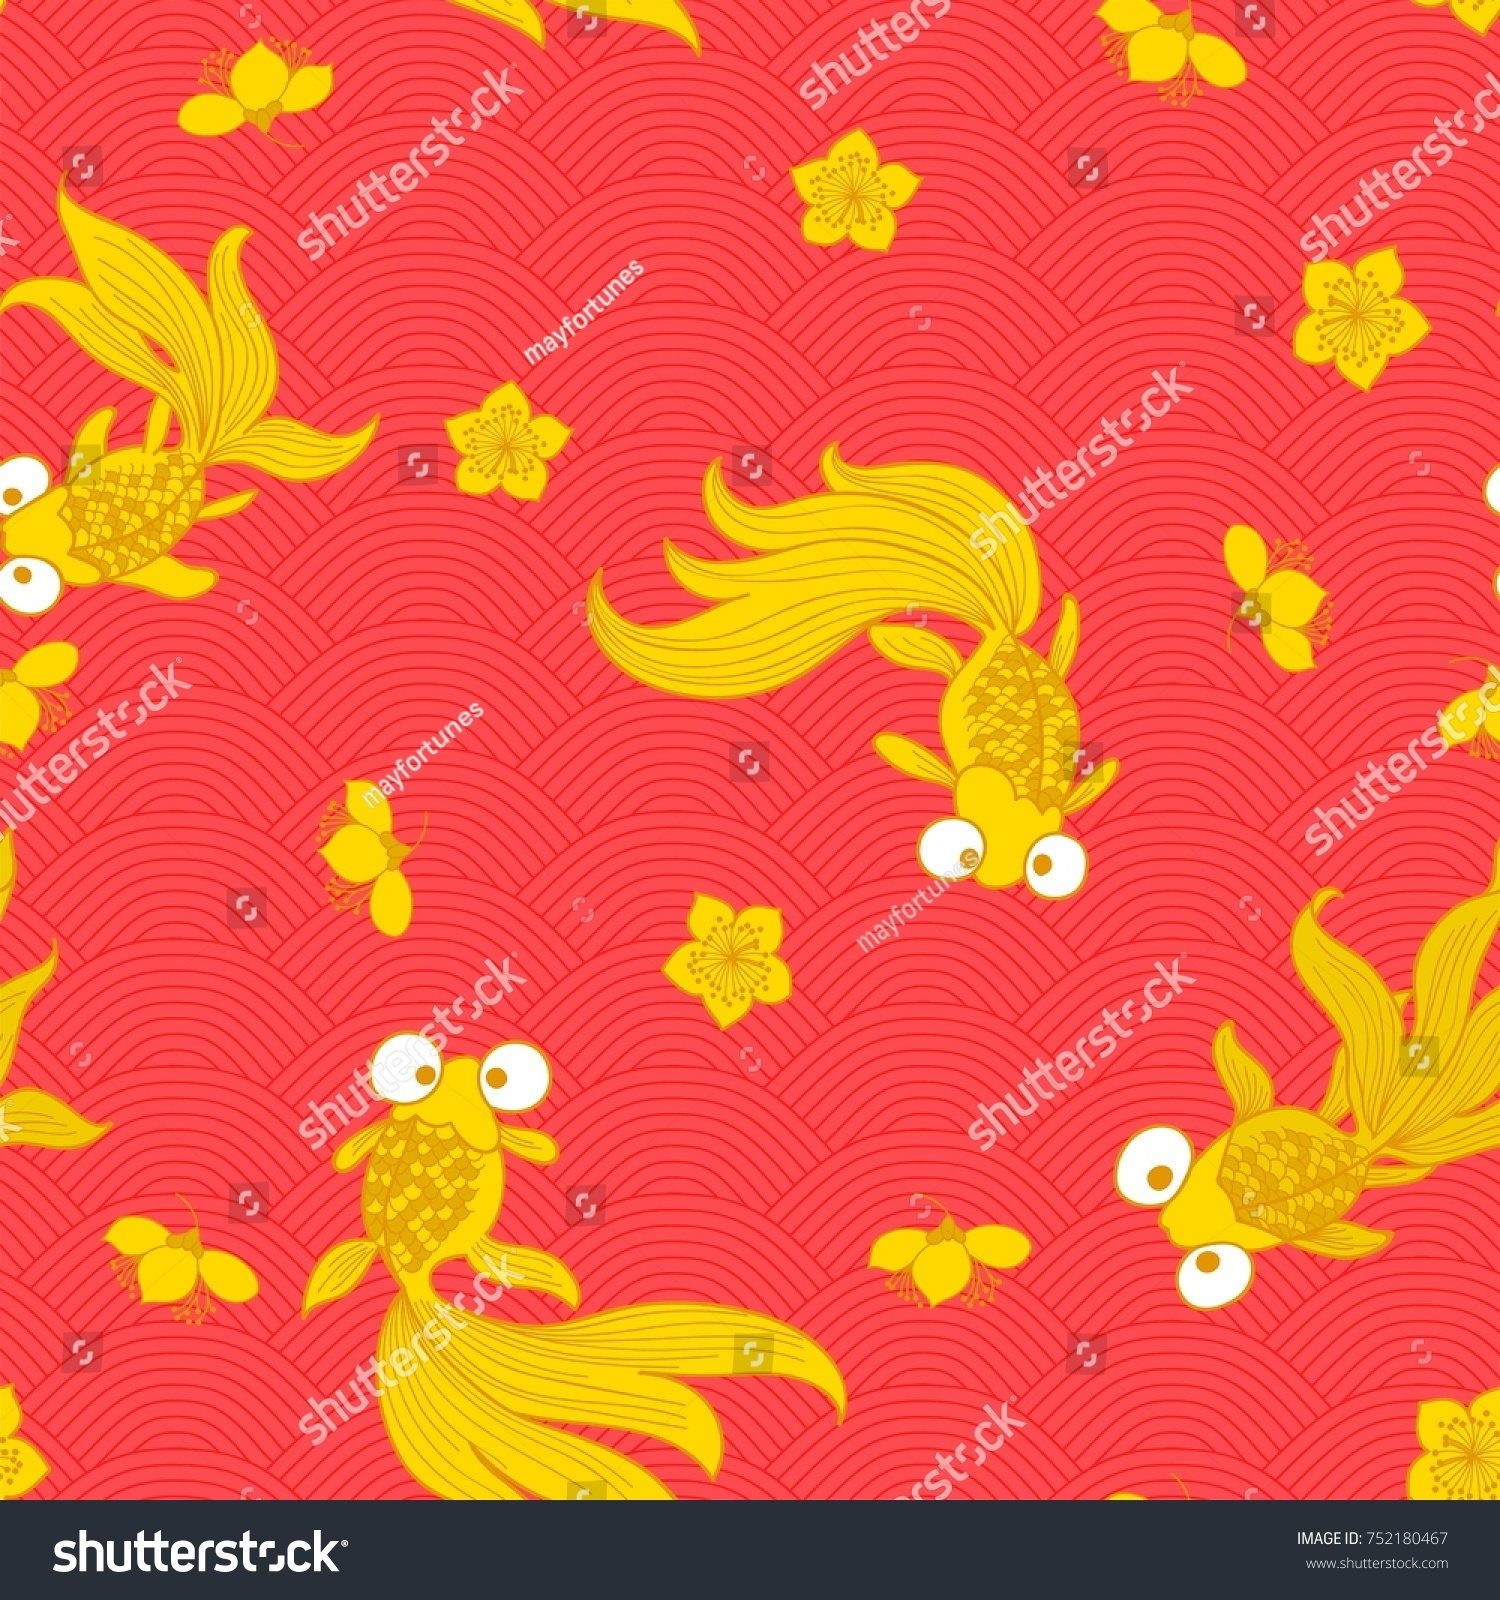 Goldfish popular symbols chinese art their stock vector 752180467 goldfish are popular symbols in chinese art as their name is a homophone for the two buycottarizona Images